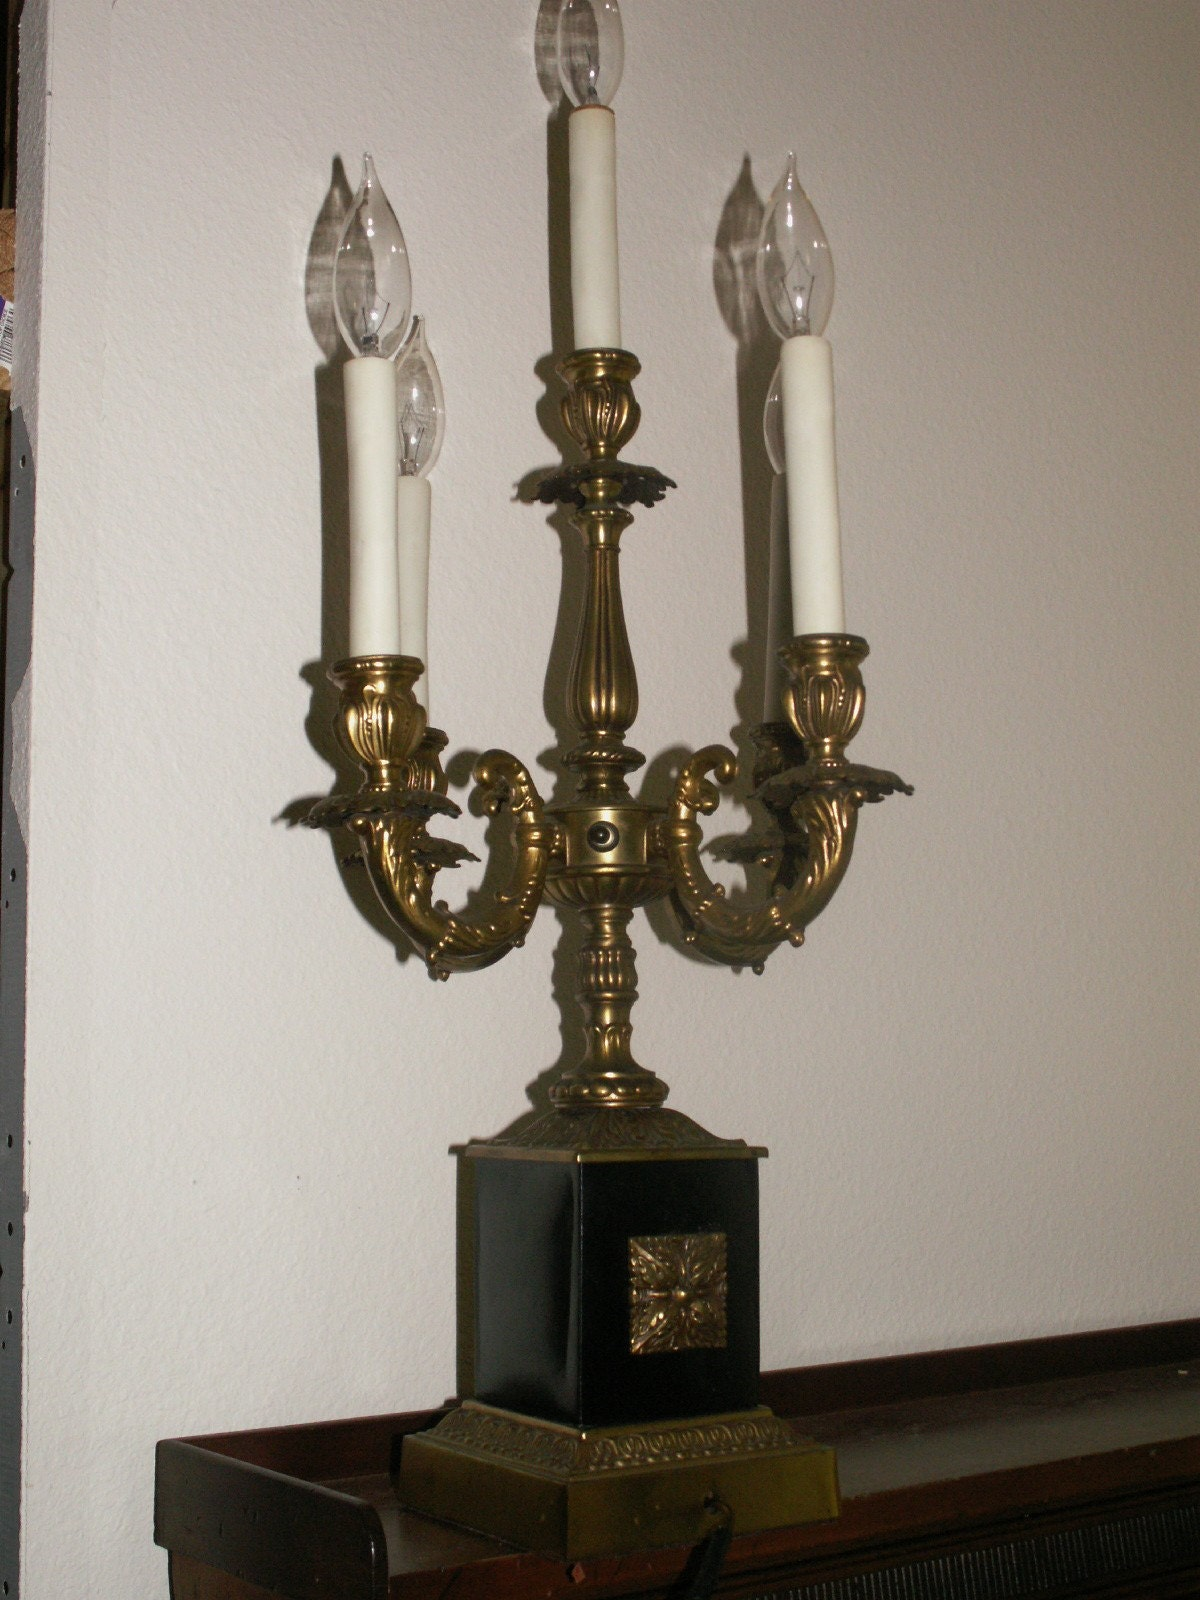 5 Arm Candelabra Table Lamp By Thesagescottie On Etsy